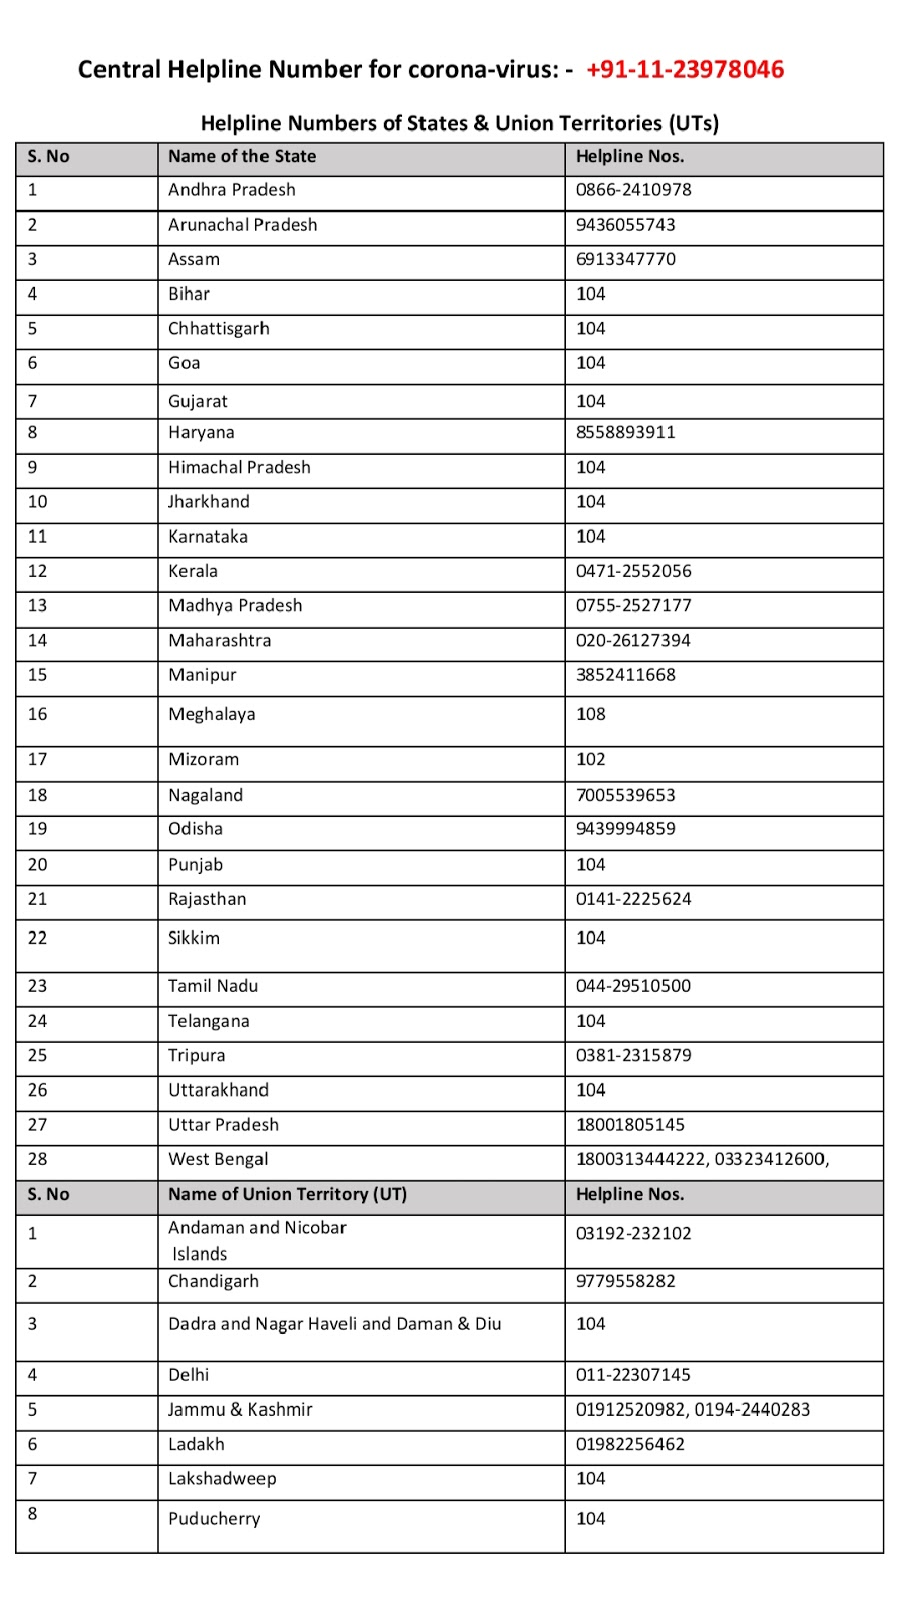 Central helpline numbers from India govt.